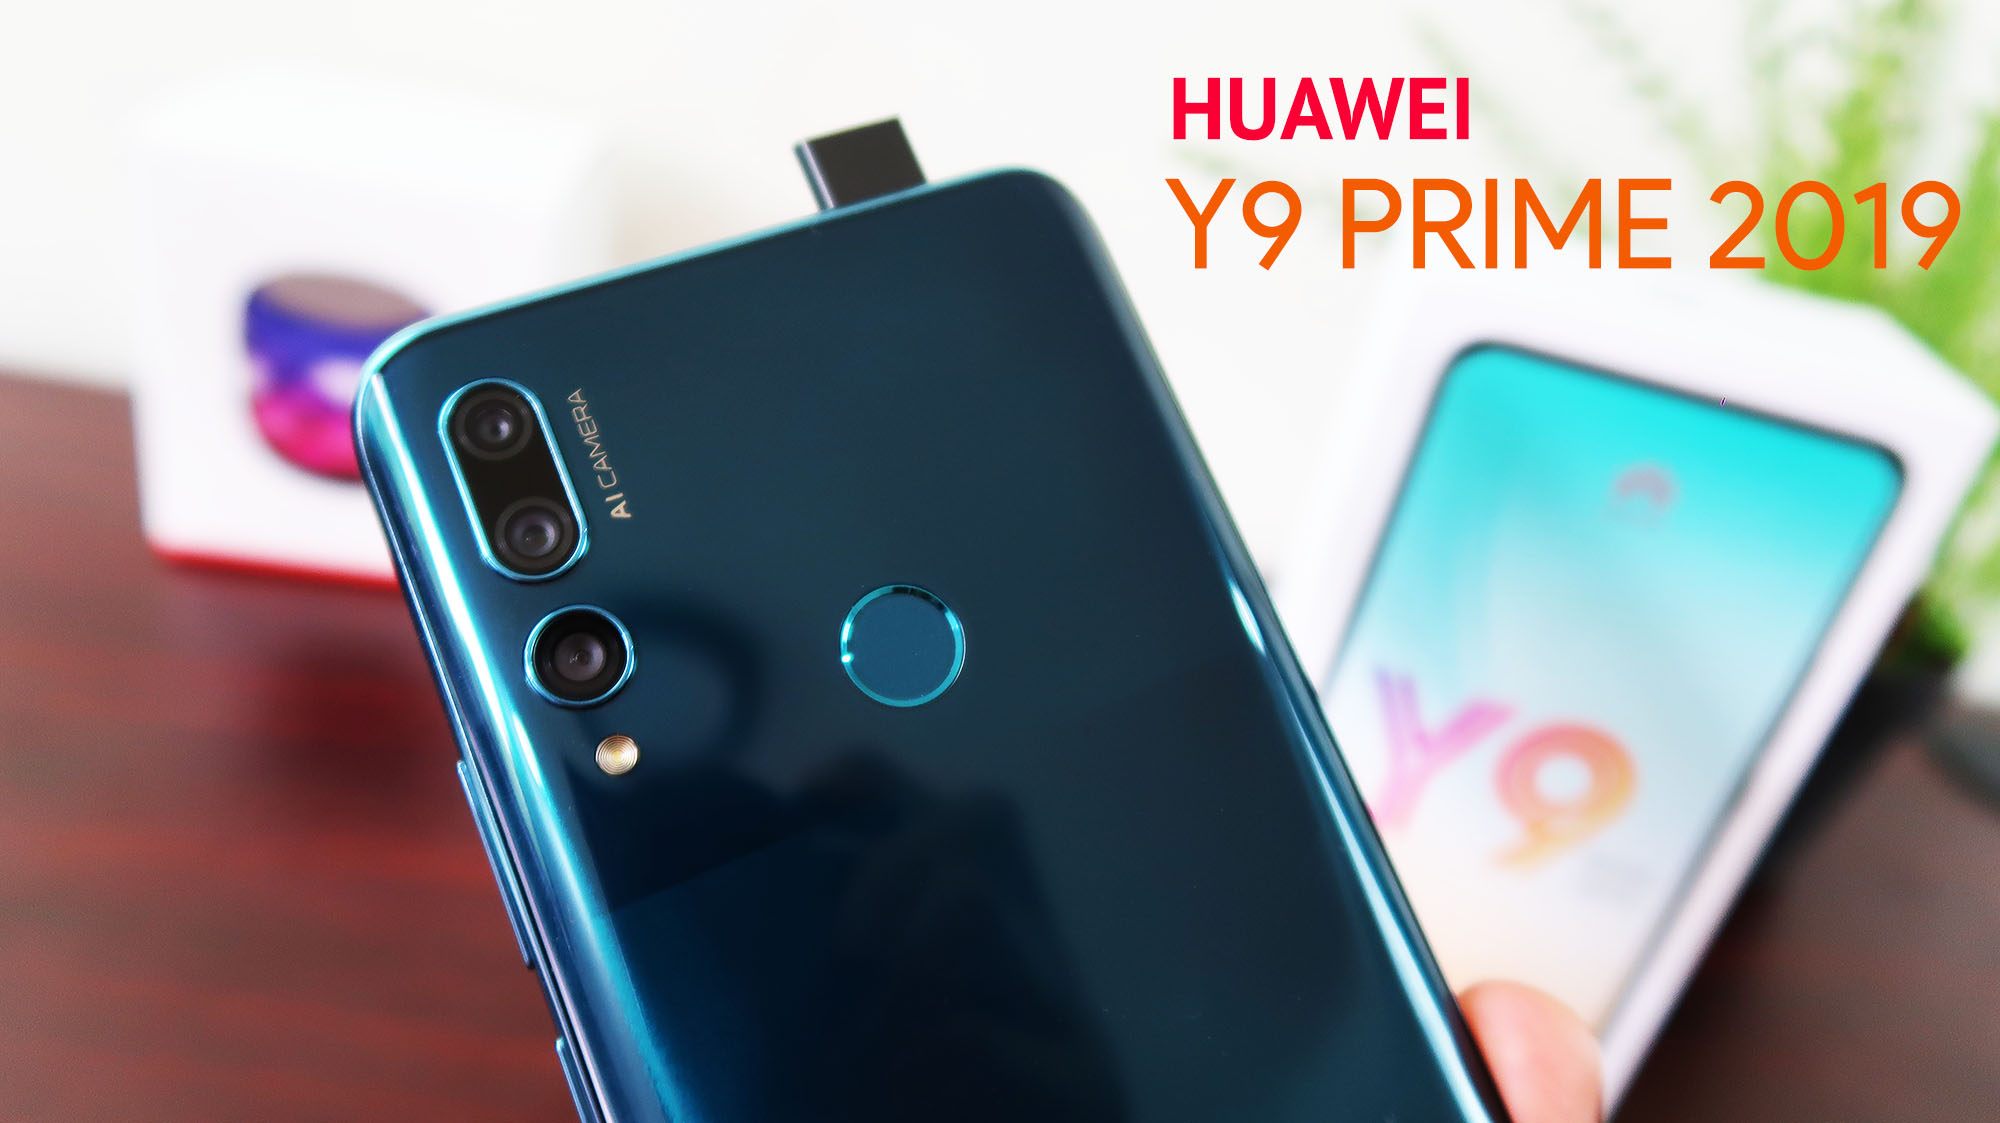 Huawei Y9 Prime 2019 Unboxing, Specs, Pop-up Camera Test, Price